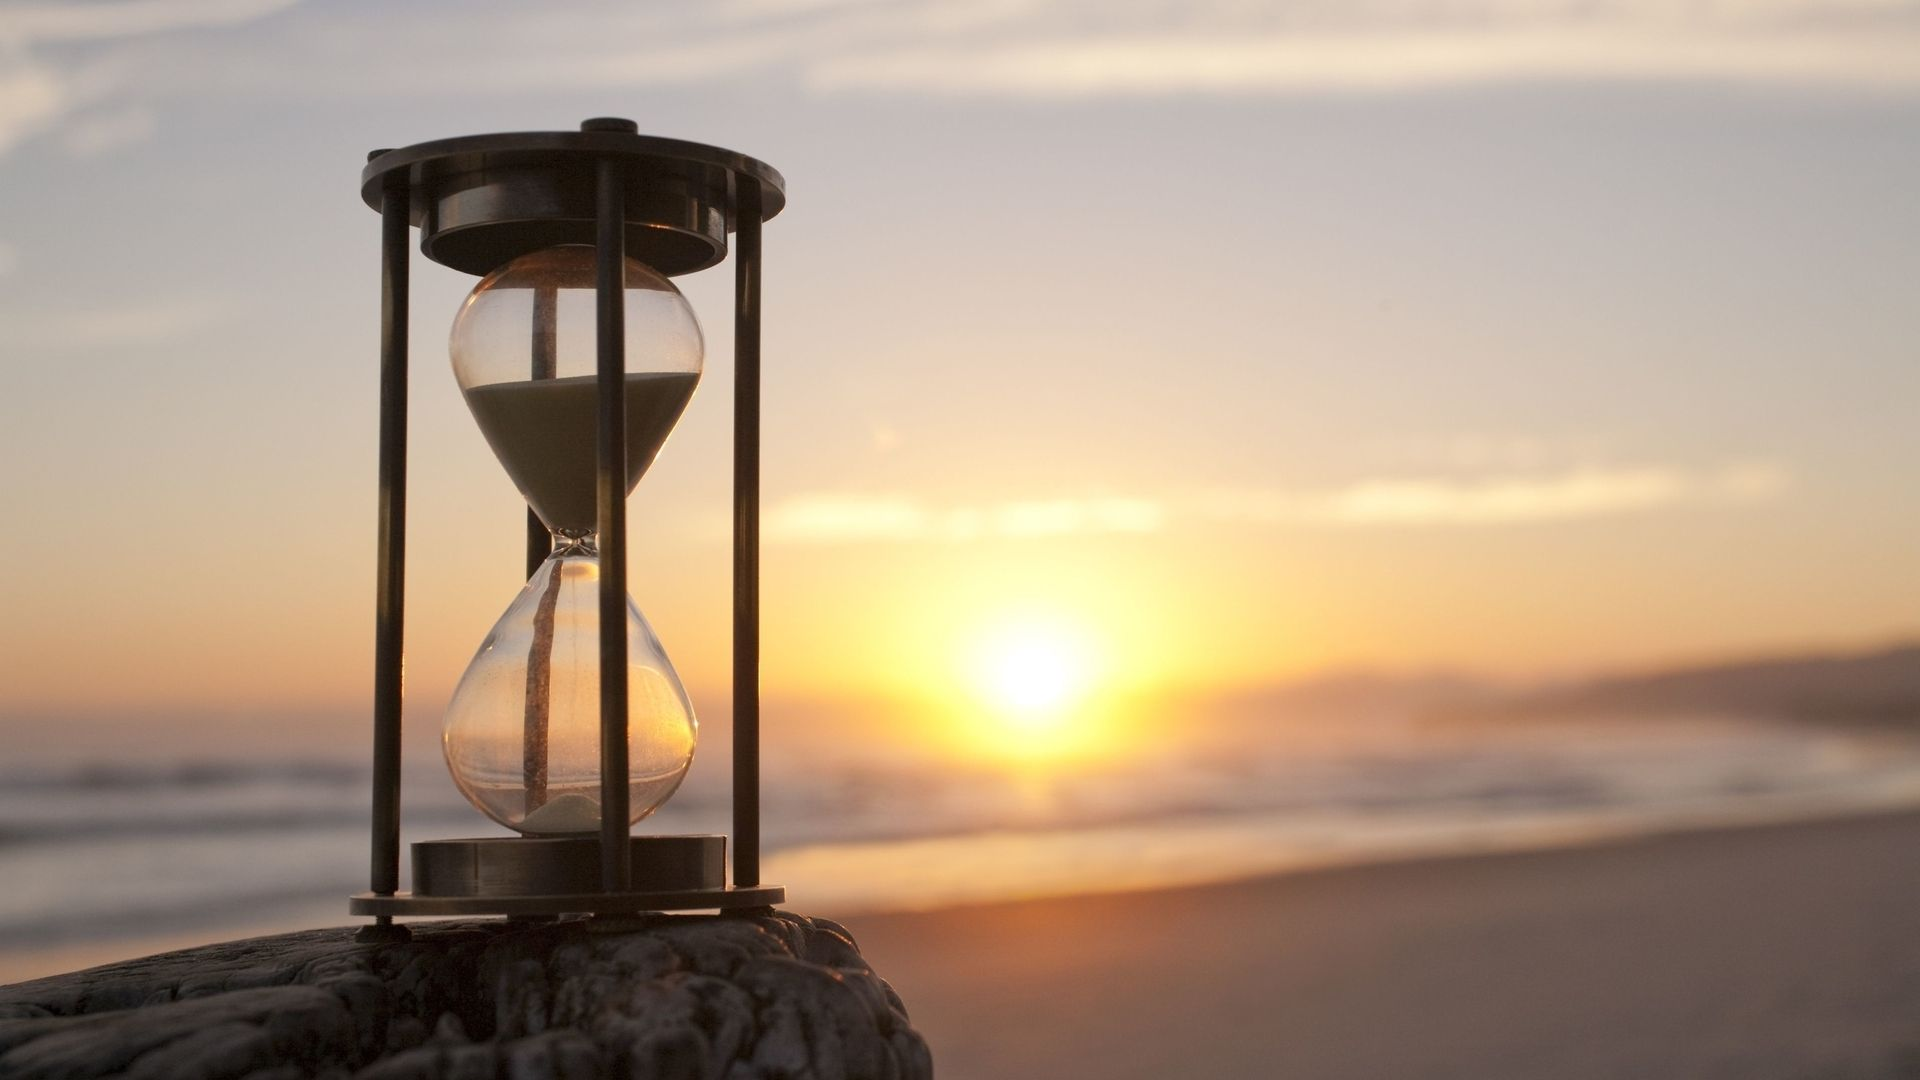 Image result for images of an hour glass